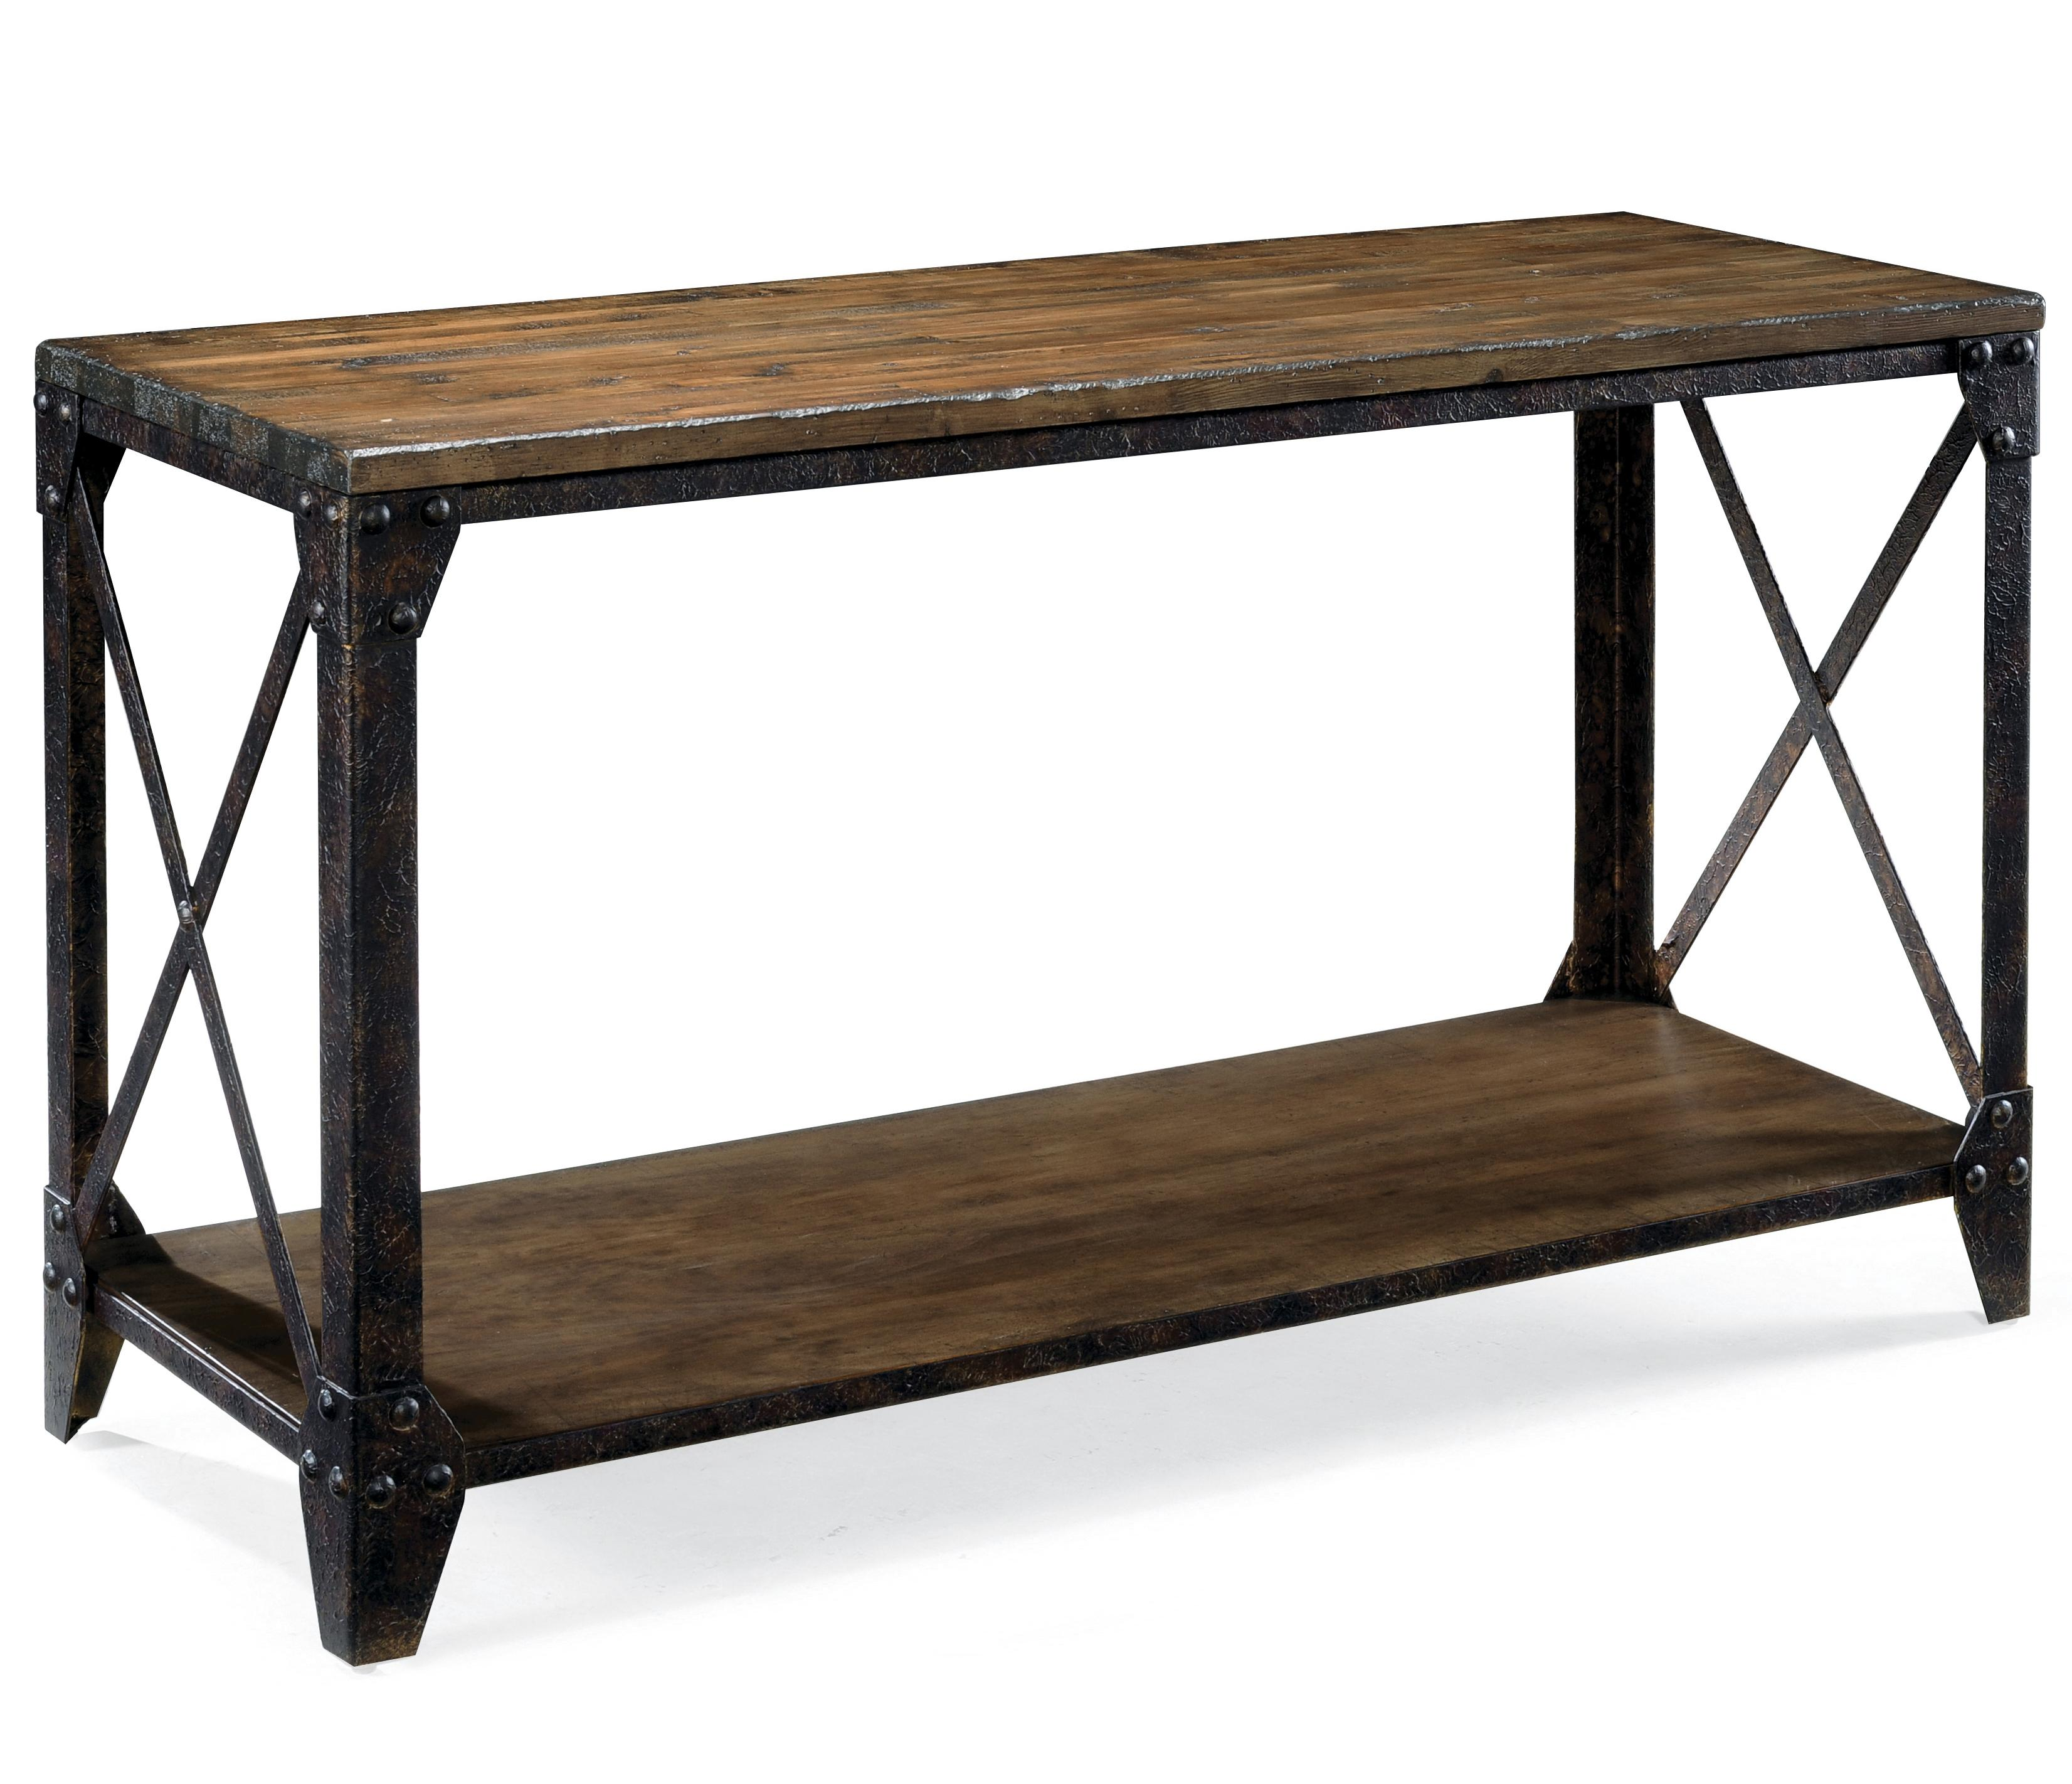 Rectangular Sofa Table with Rustic Iron Legs by Magnussen Home